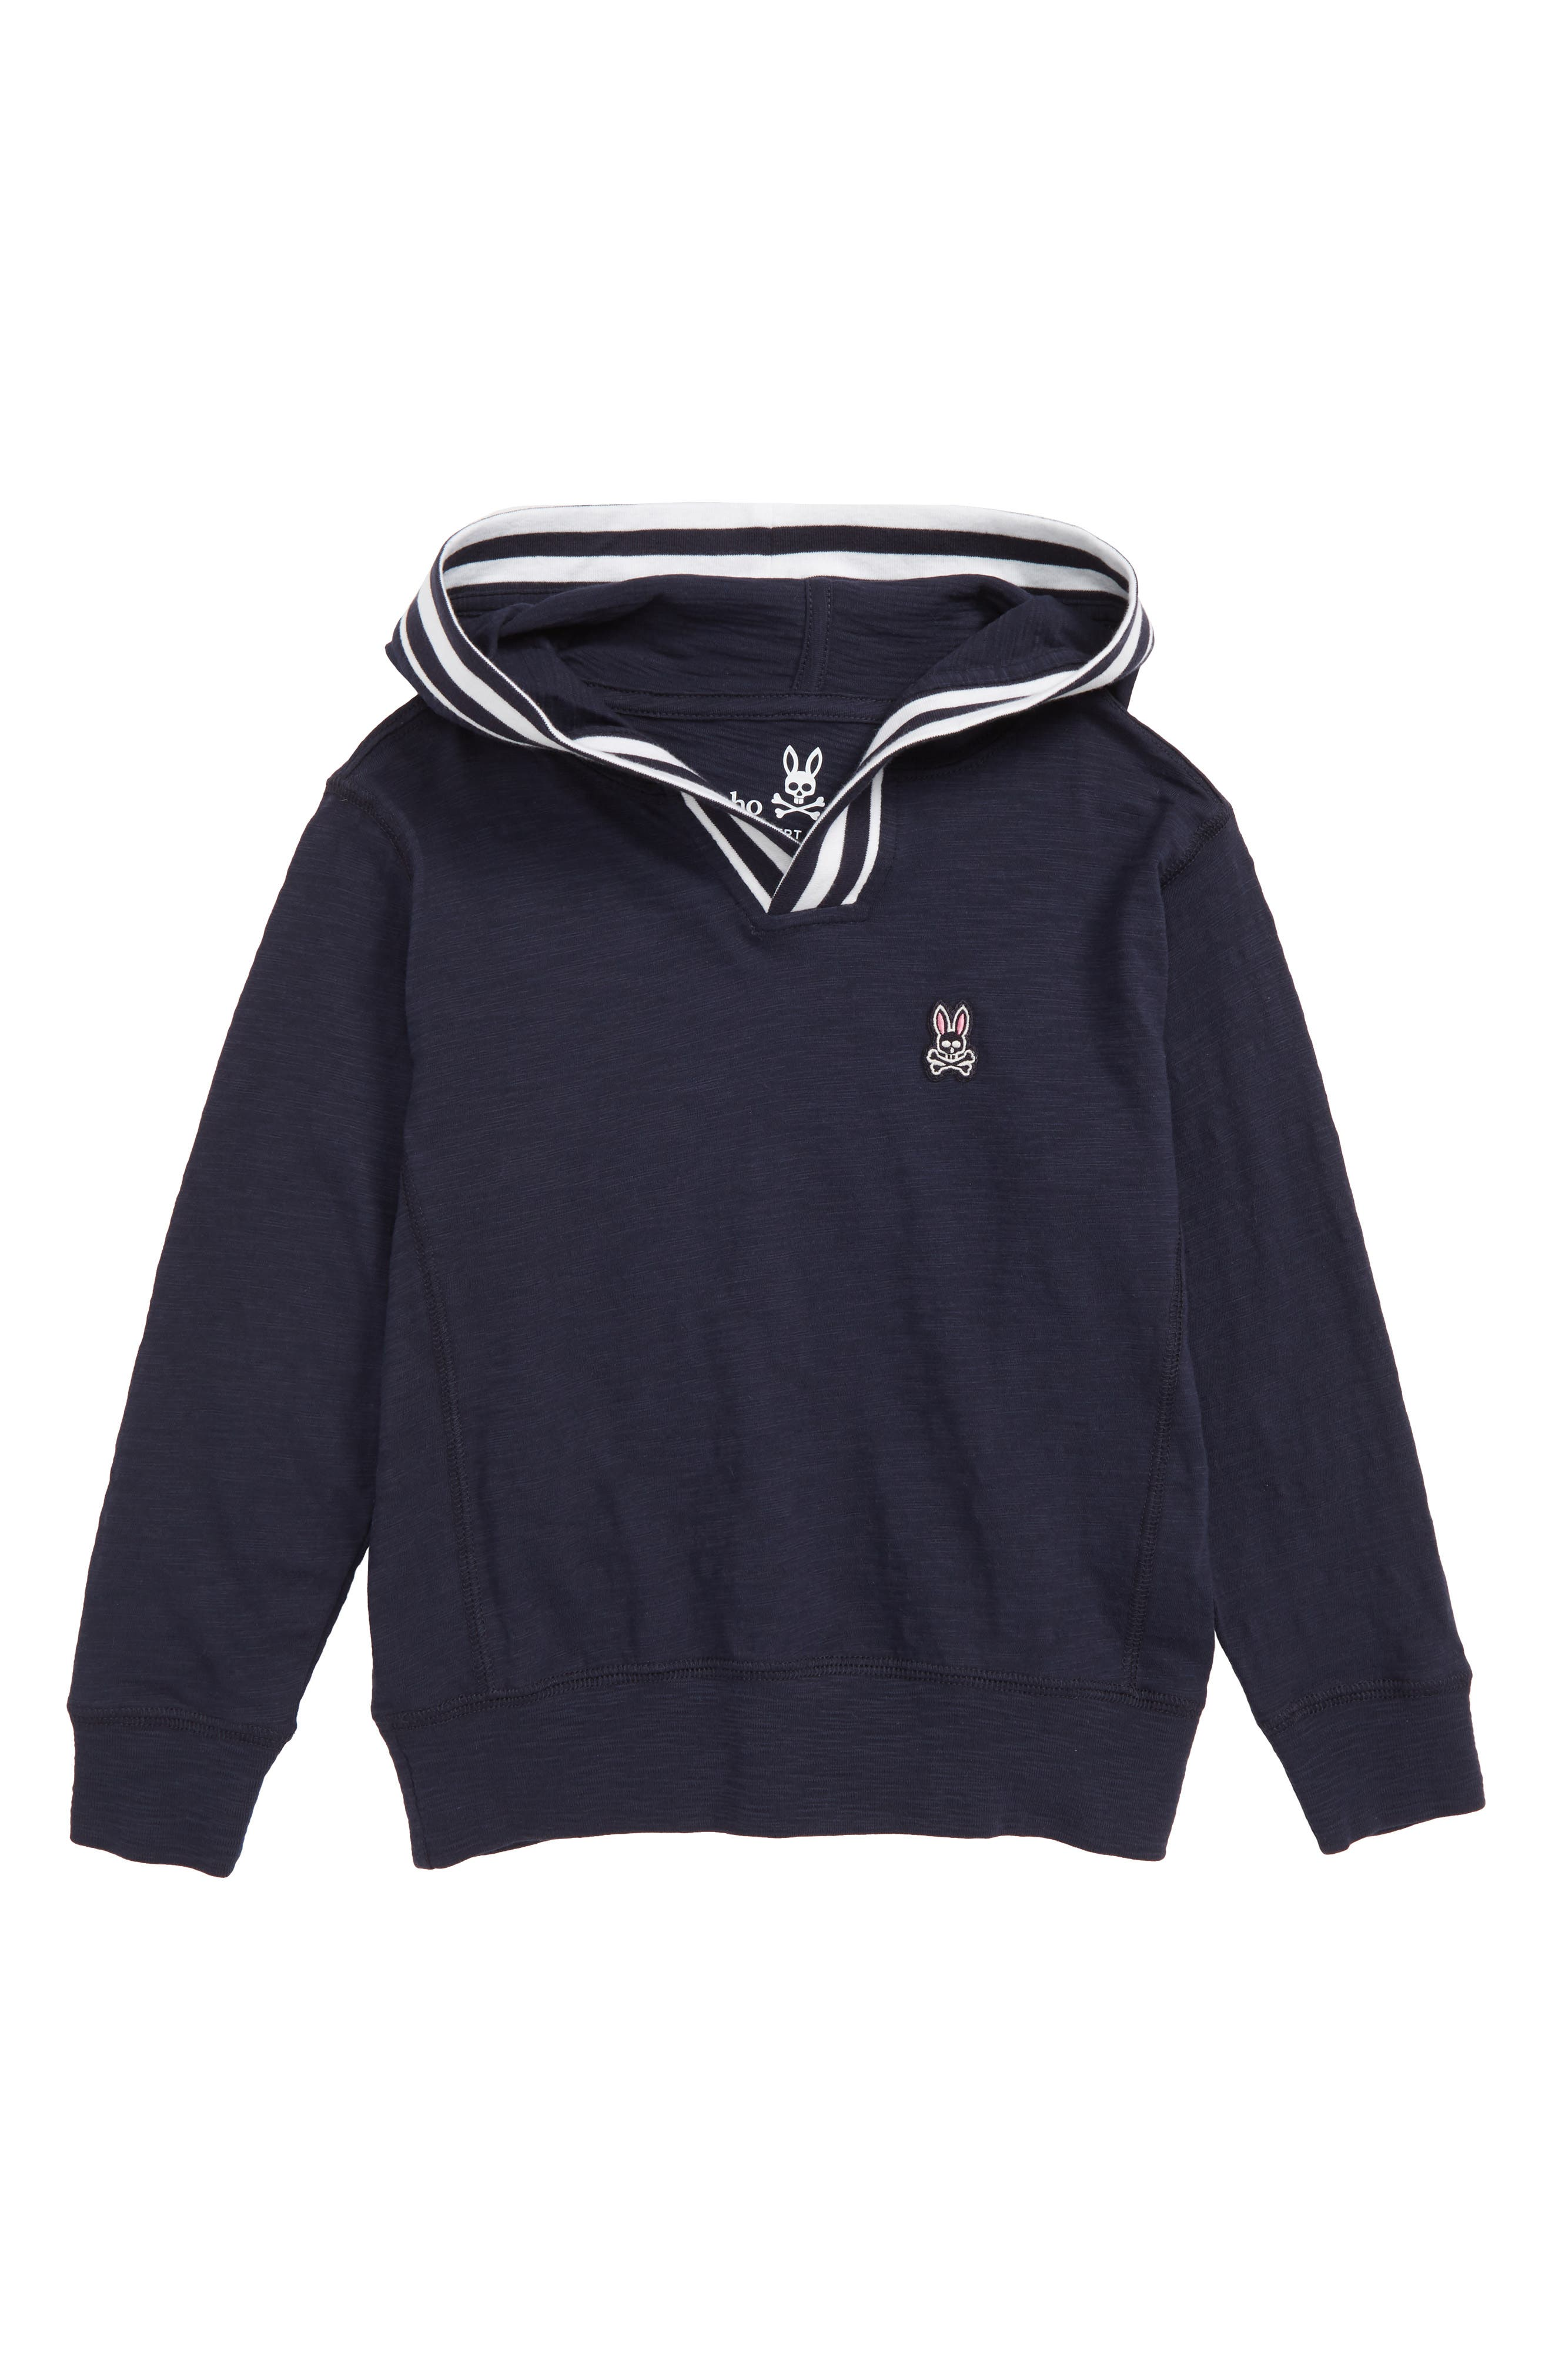 Ludford Hooded T-Shirt, Main, color, NAVY